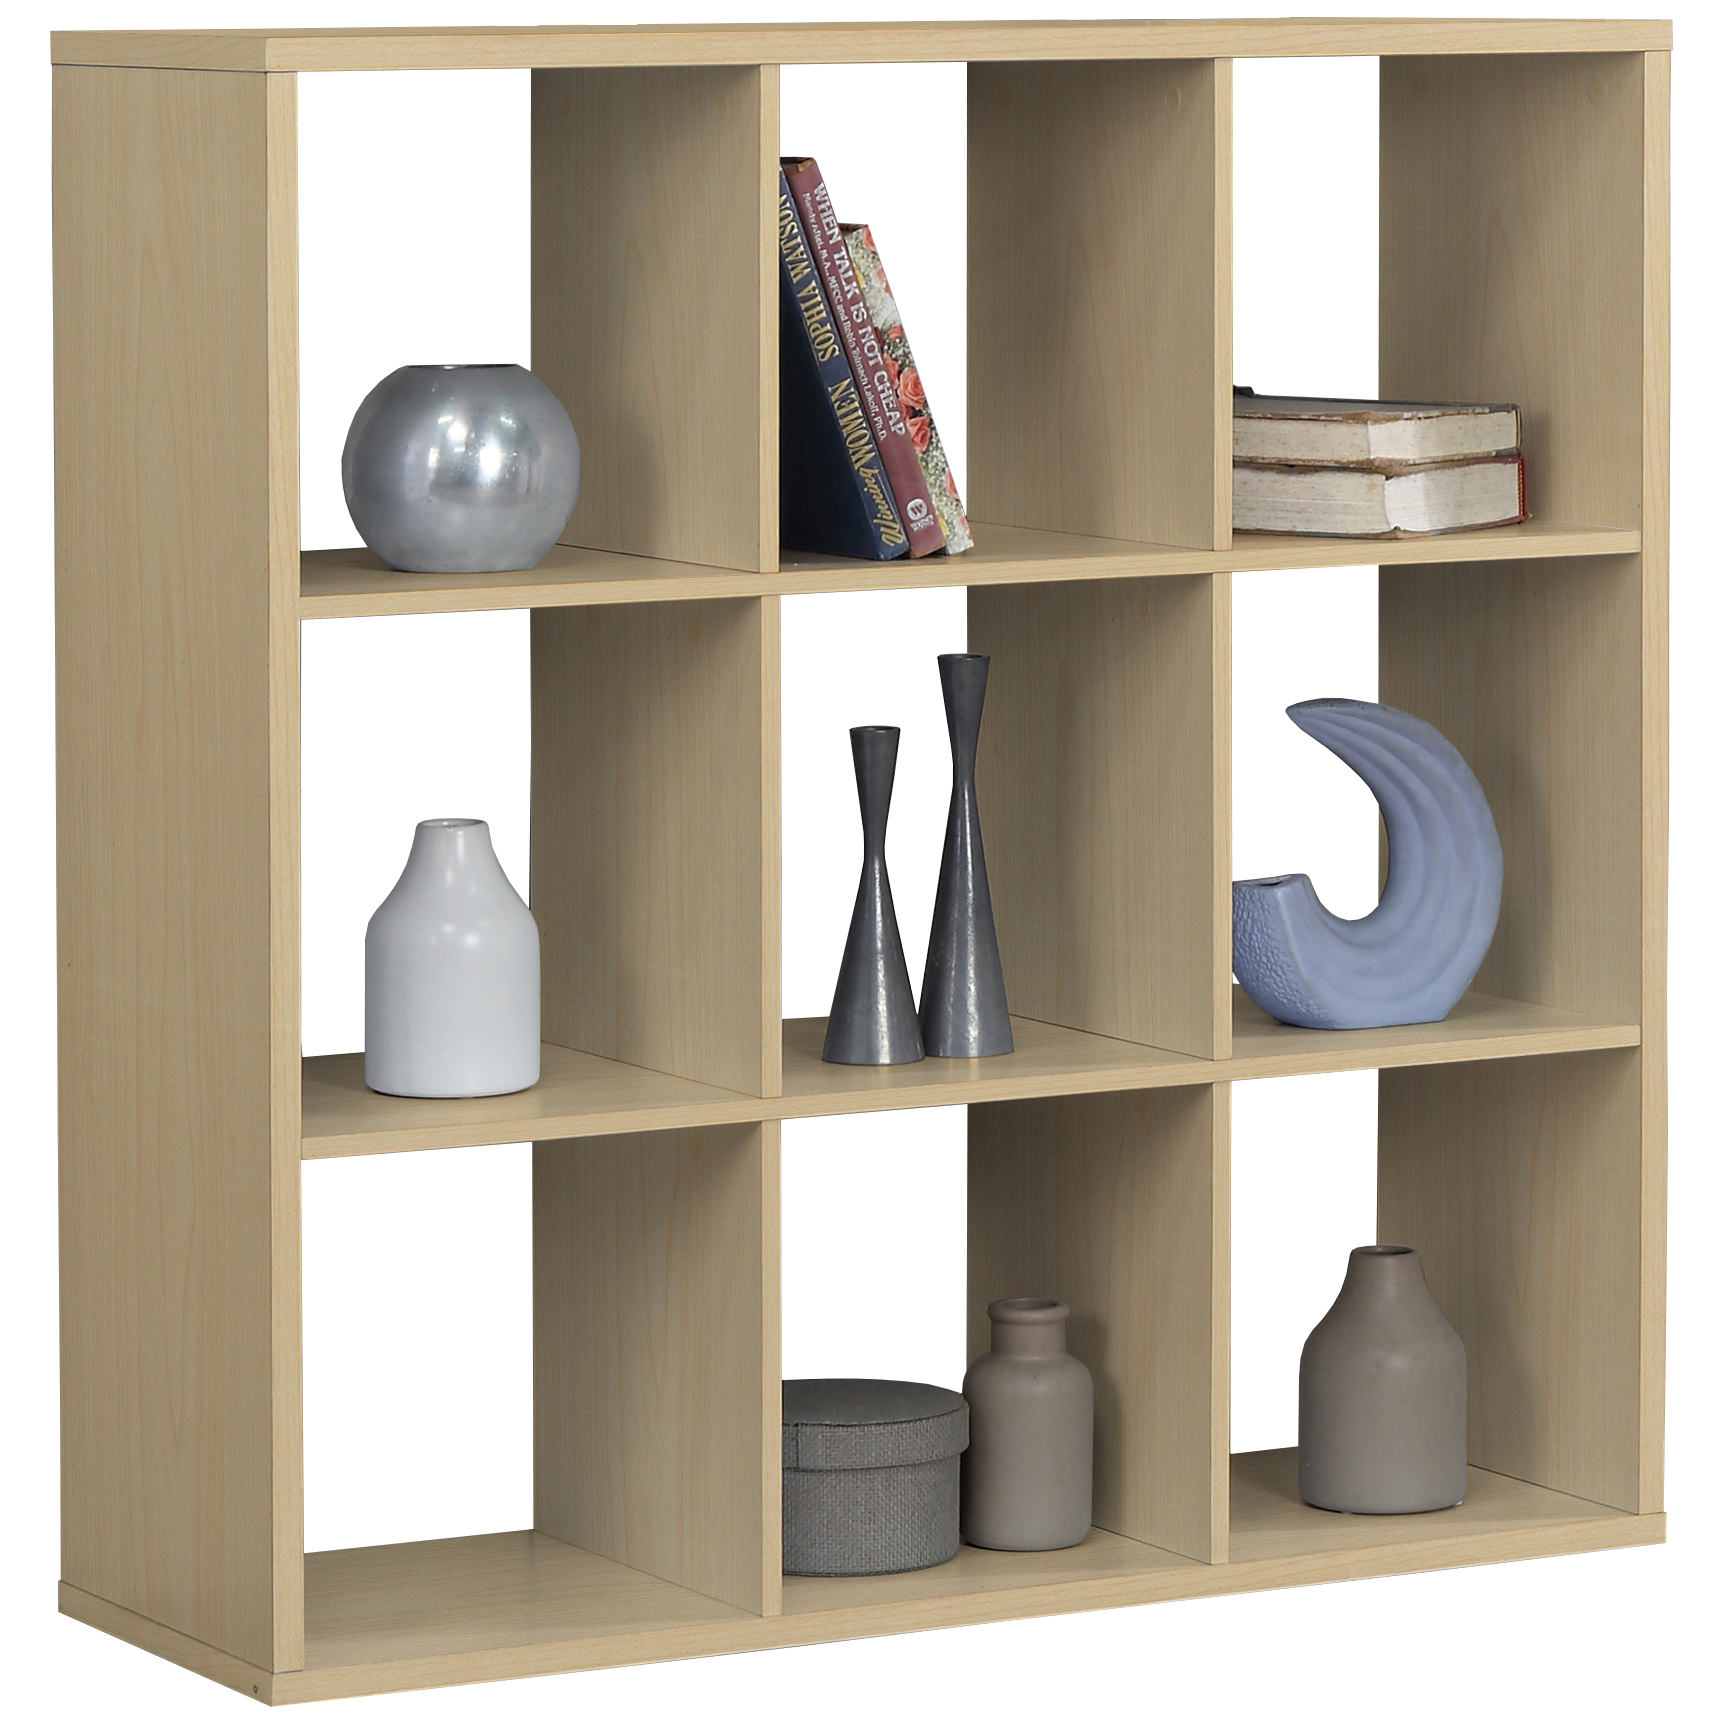 This storage shelf or box cube room divider has a beech finish and would fit well in any modern or contemporary decorated living